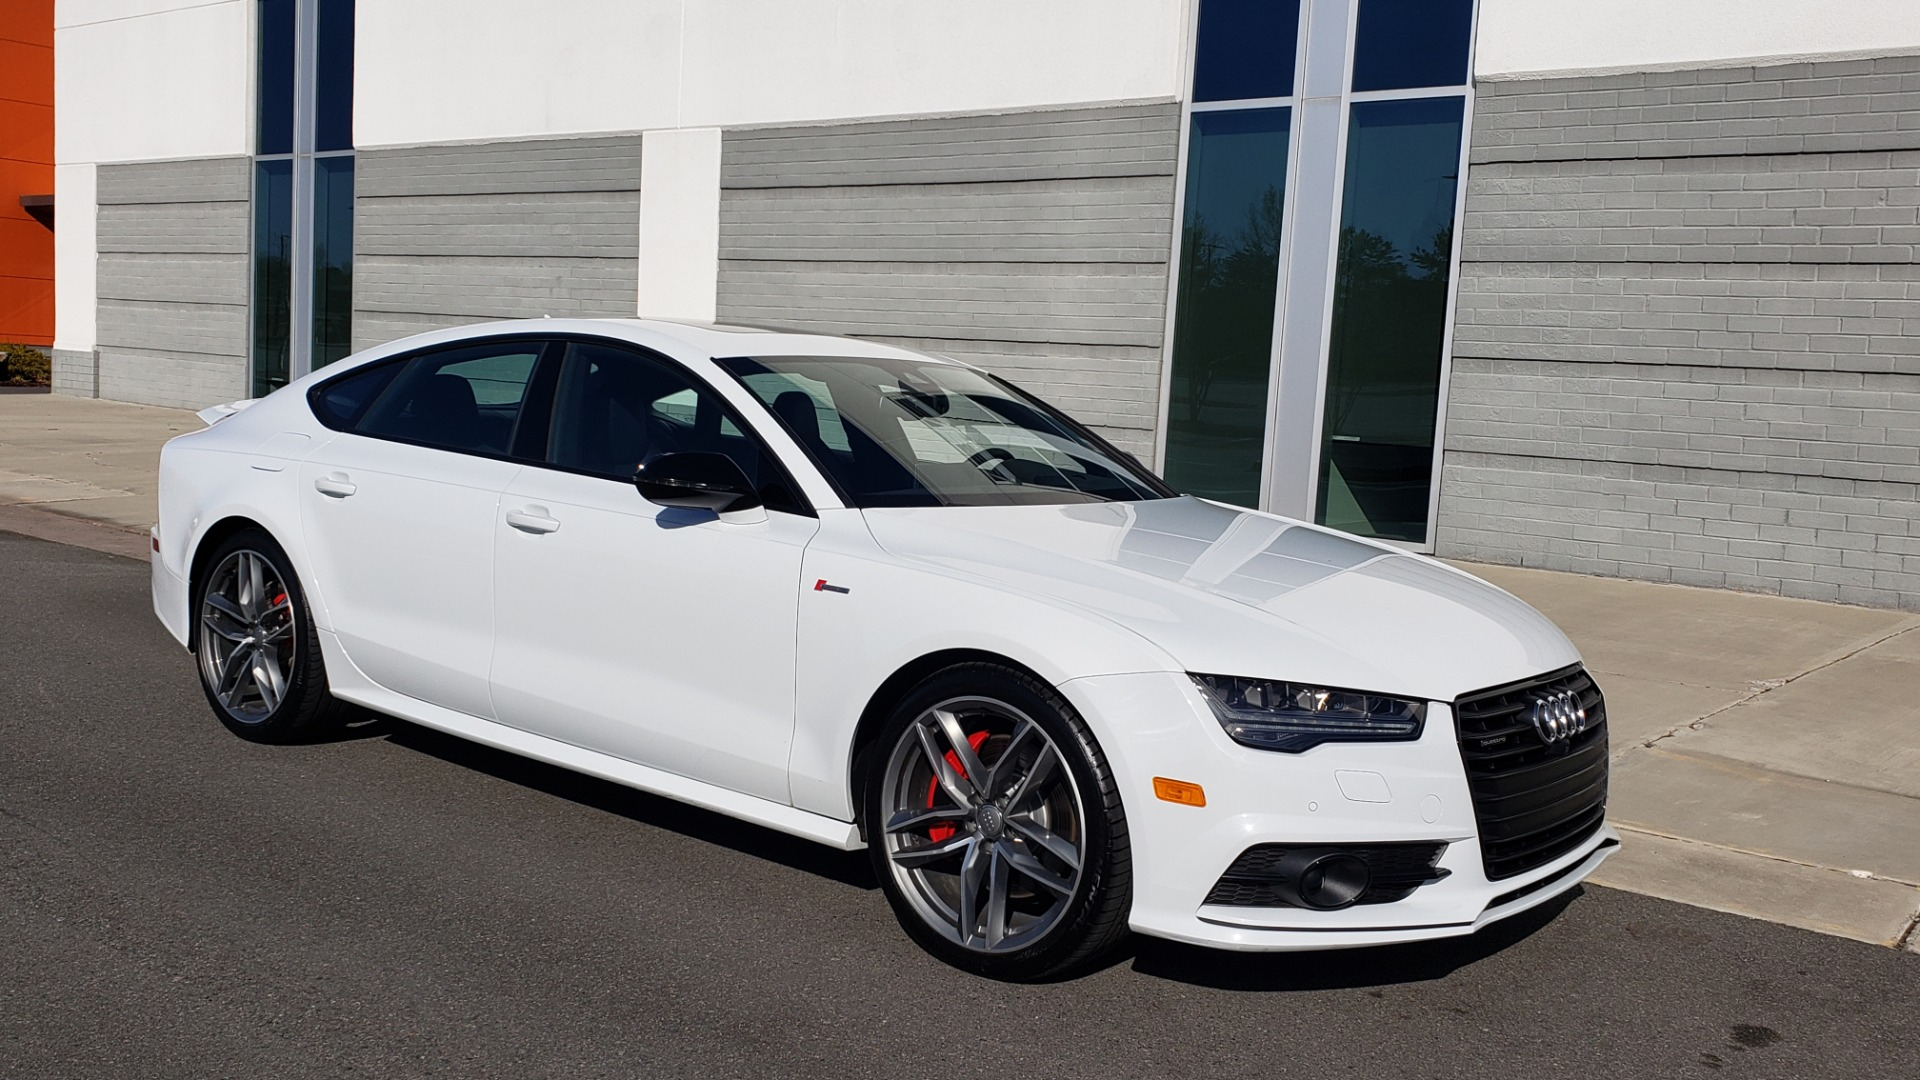 Used 2017 Audi A7 COMPETITION PRESTIGE 3.0T / NAV / DRVR ASST / ADAPT CRUISE for sale $41,995 at Formula Imports in Charlotte NC 28227 7